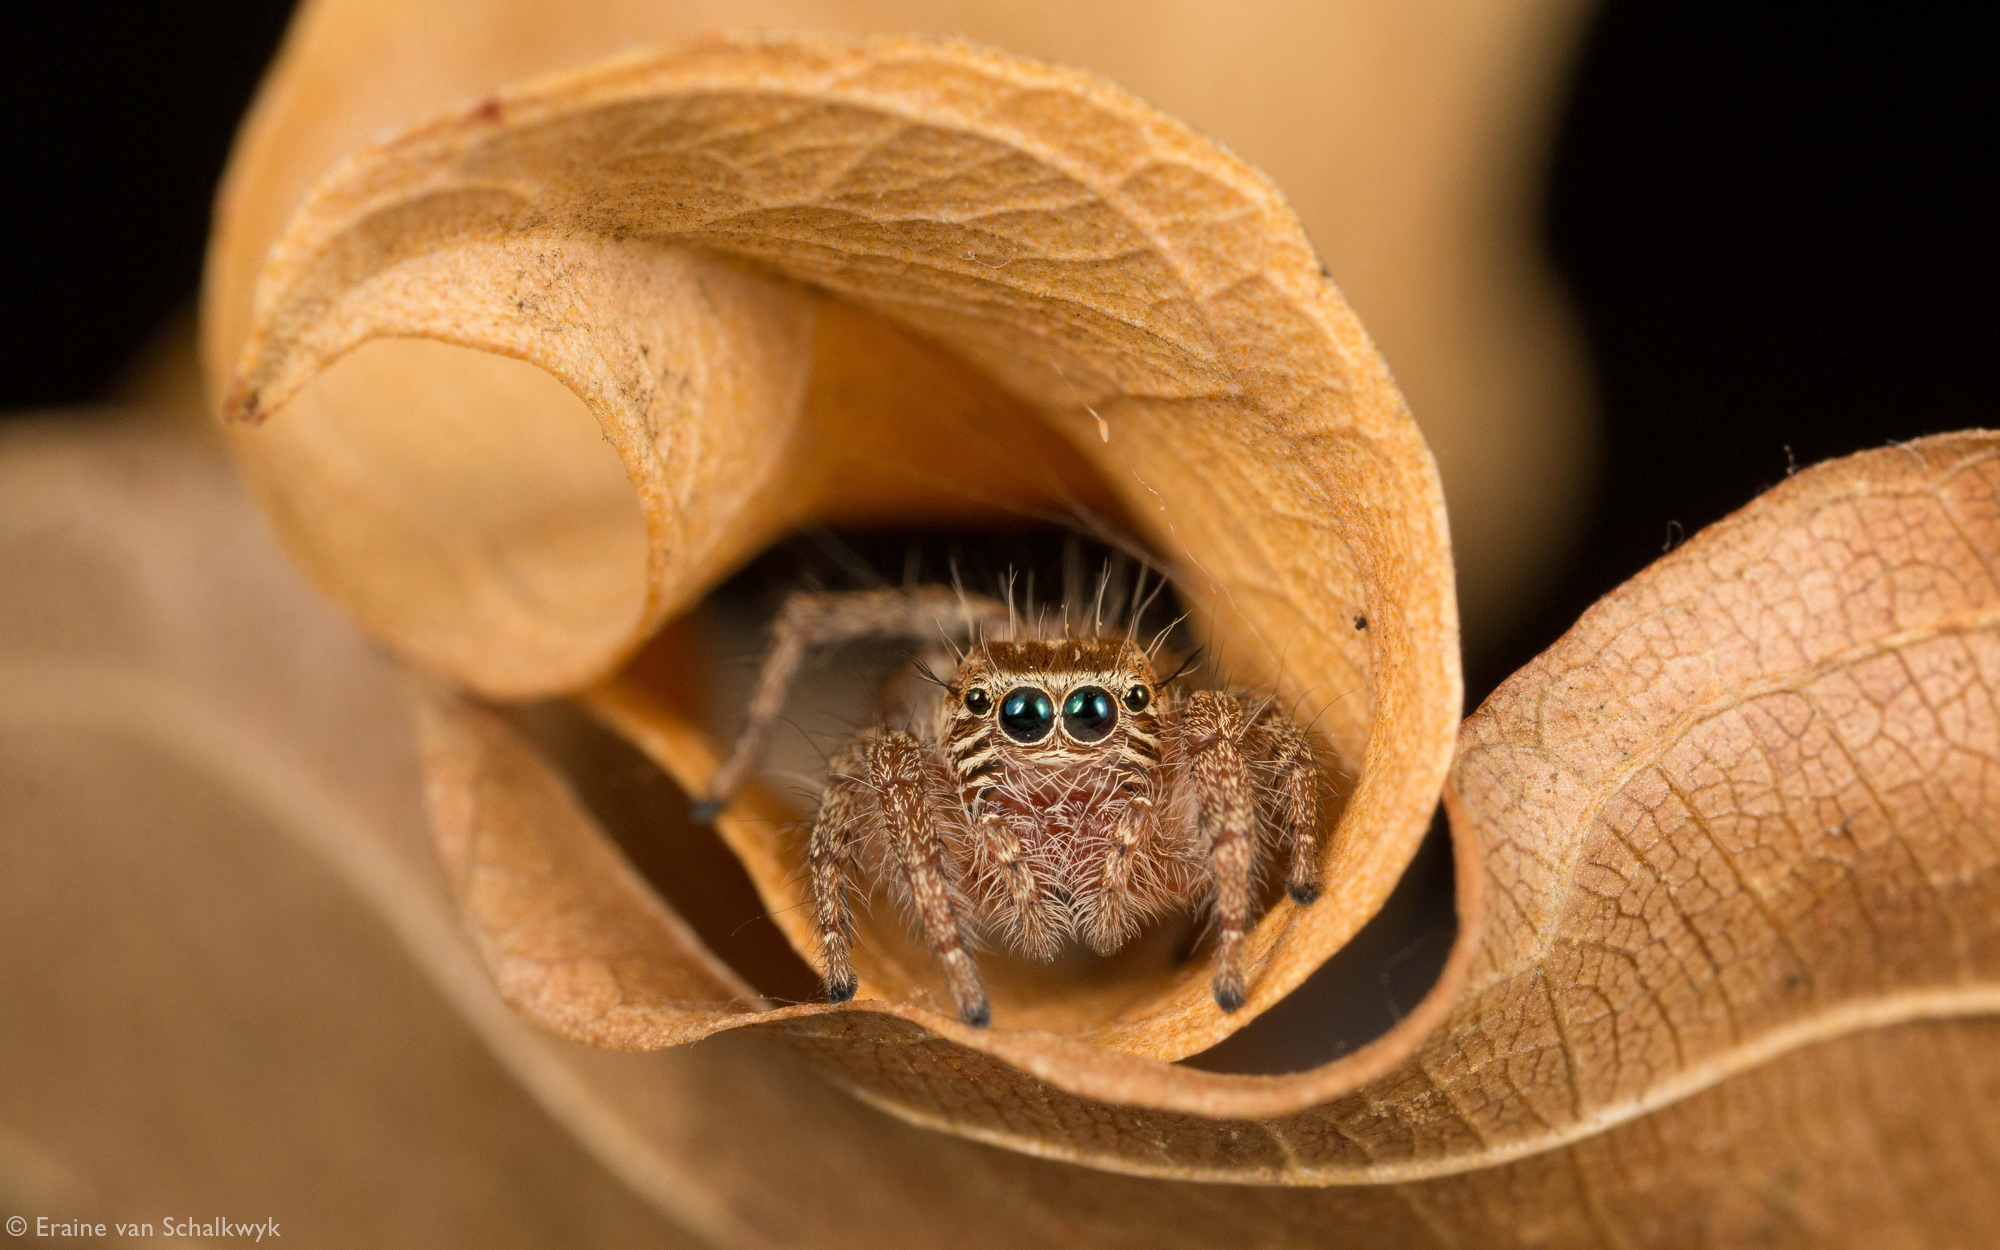 Jumping spider (Hyllus sp.) amongst leaf litter, spider, arachnid, macro photography